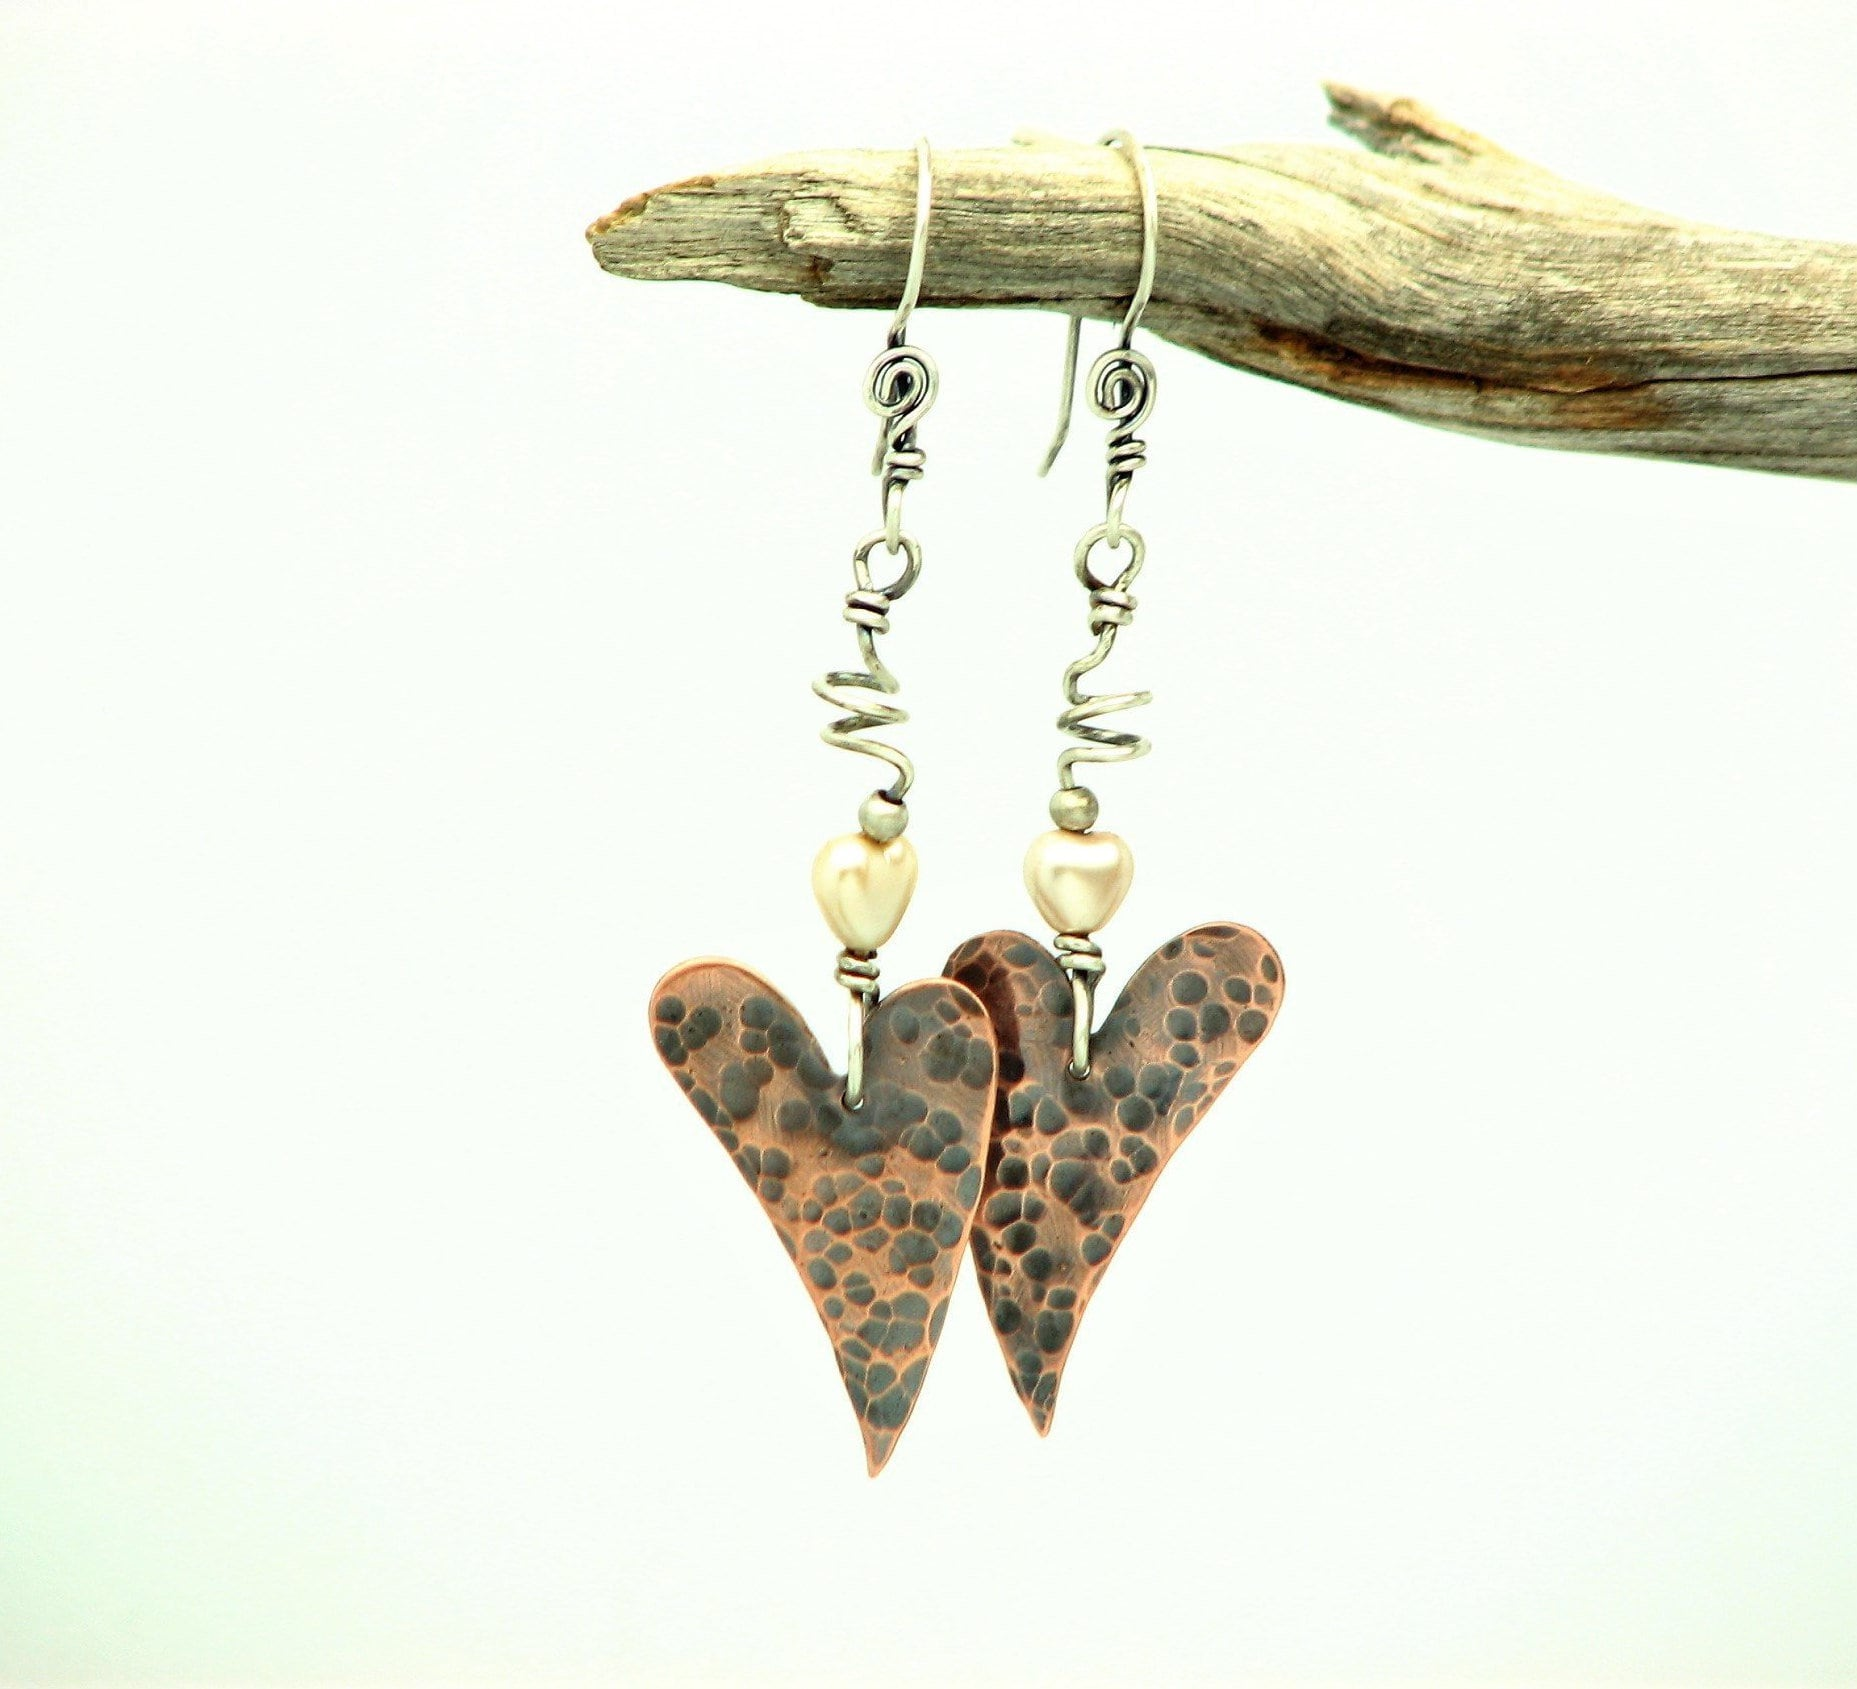 8565d2a96 Heart Earrings Copper Jewelry Wire Wrapped Jewelry Hammered ...